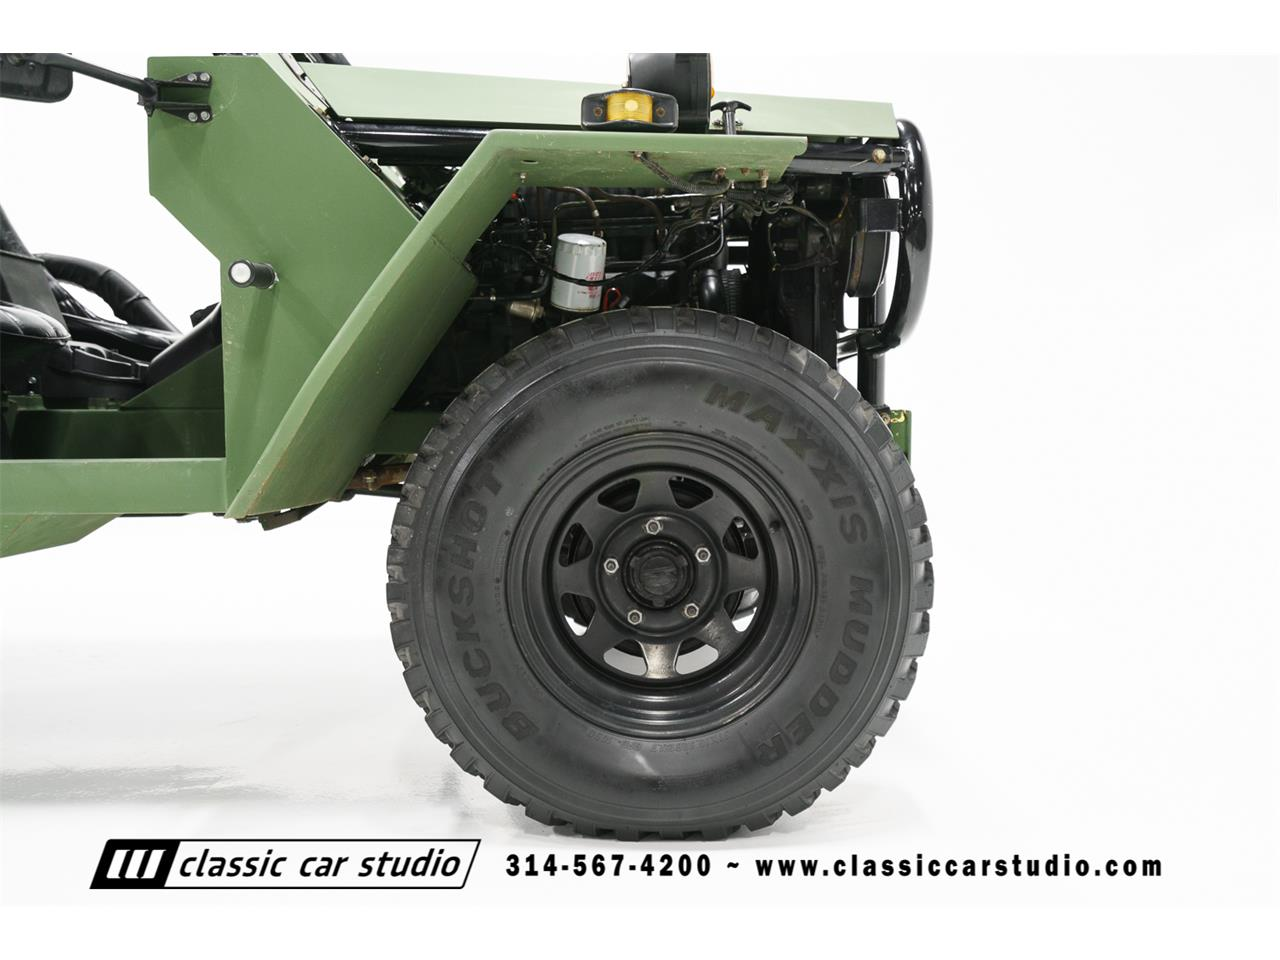 Large Picture of '75 M151A2 Wolverine - $29,900.00 Offered by Classic Car Studio - K2SV